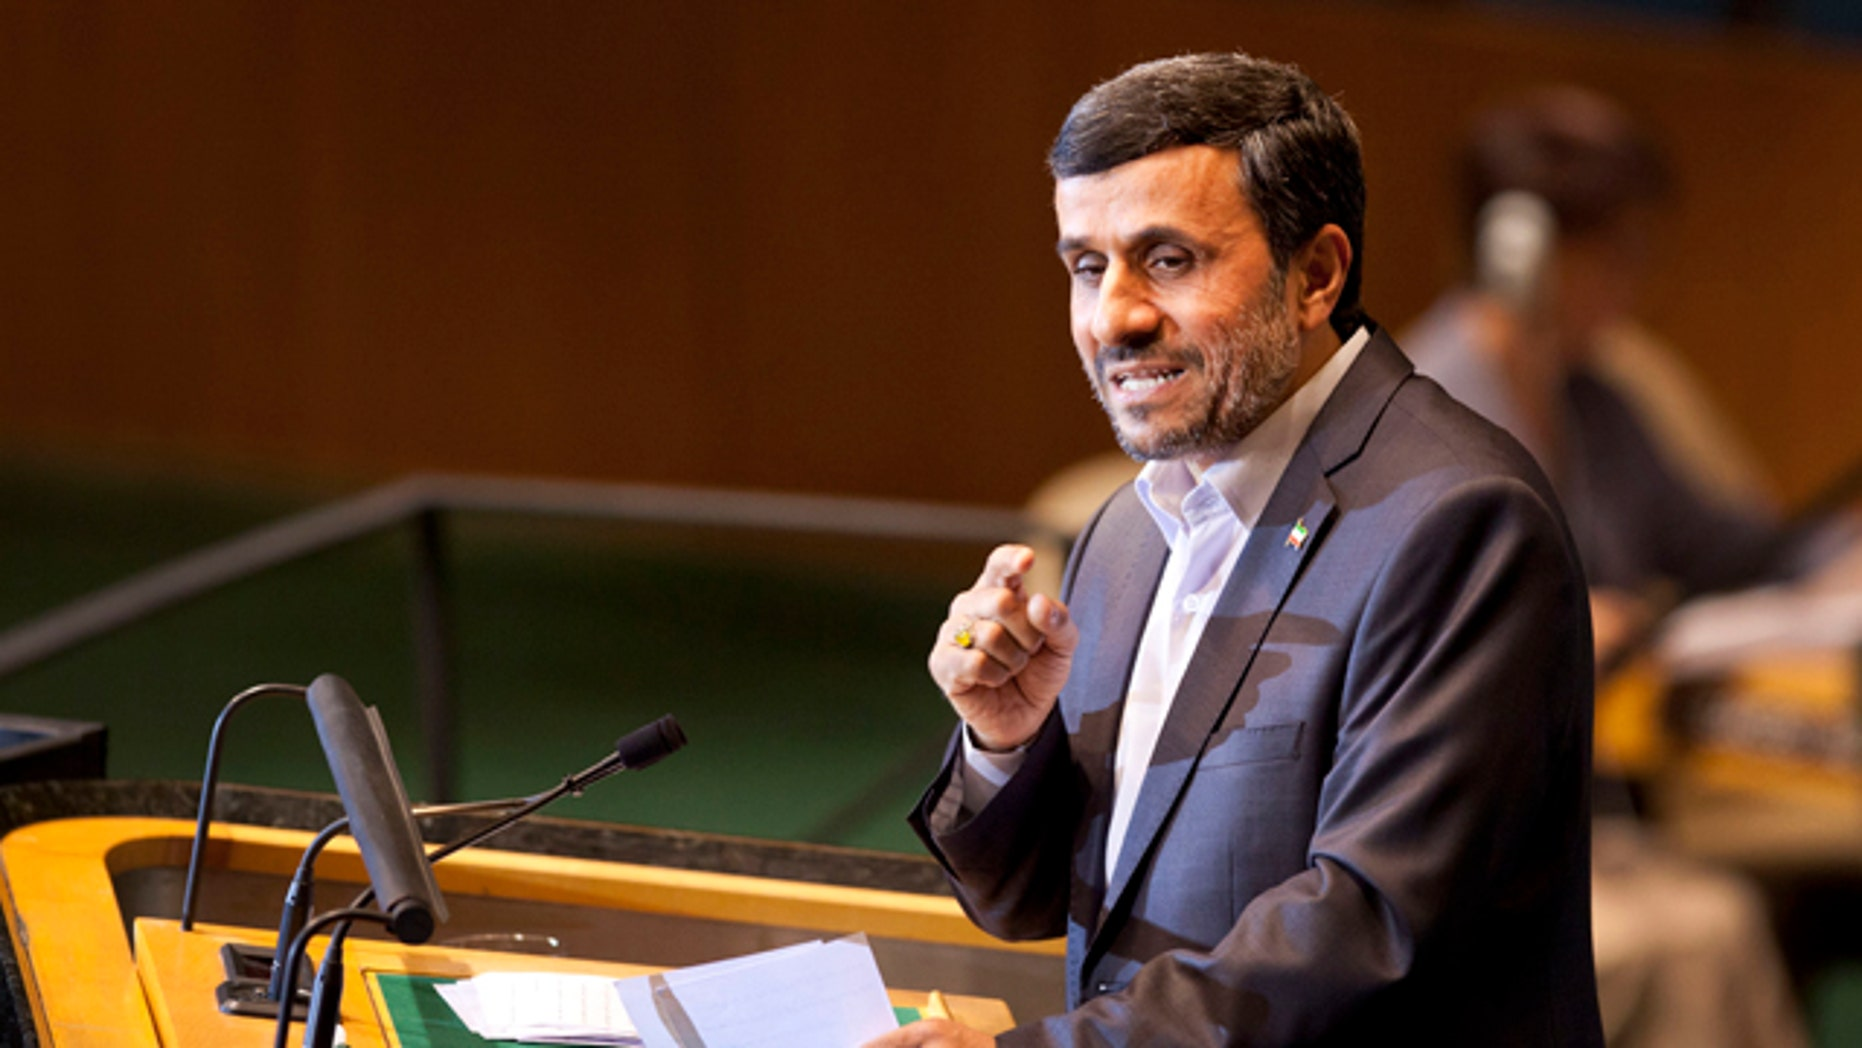 Sept. 22: Iranian President Mahmoud Ahmadinejad speaks during the 66th session of the United Nations General Assembly at U.N. headquarters.